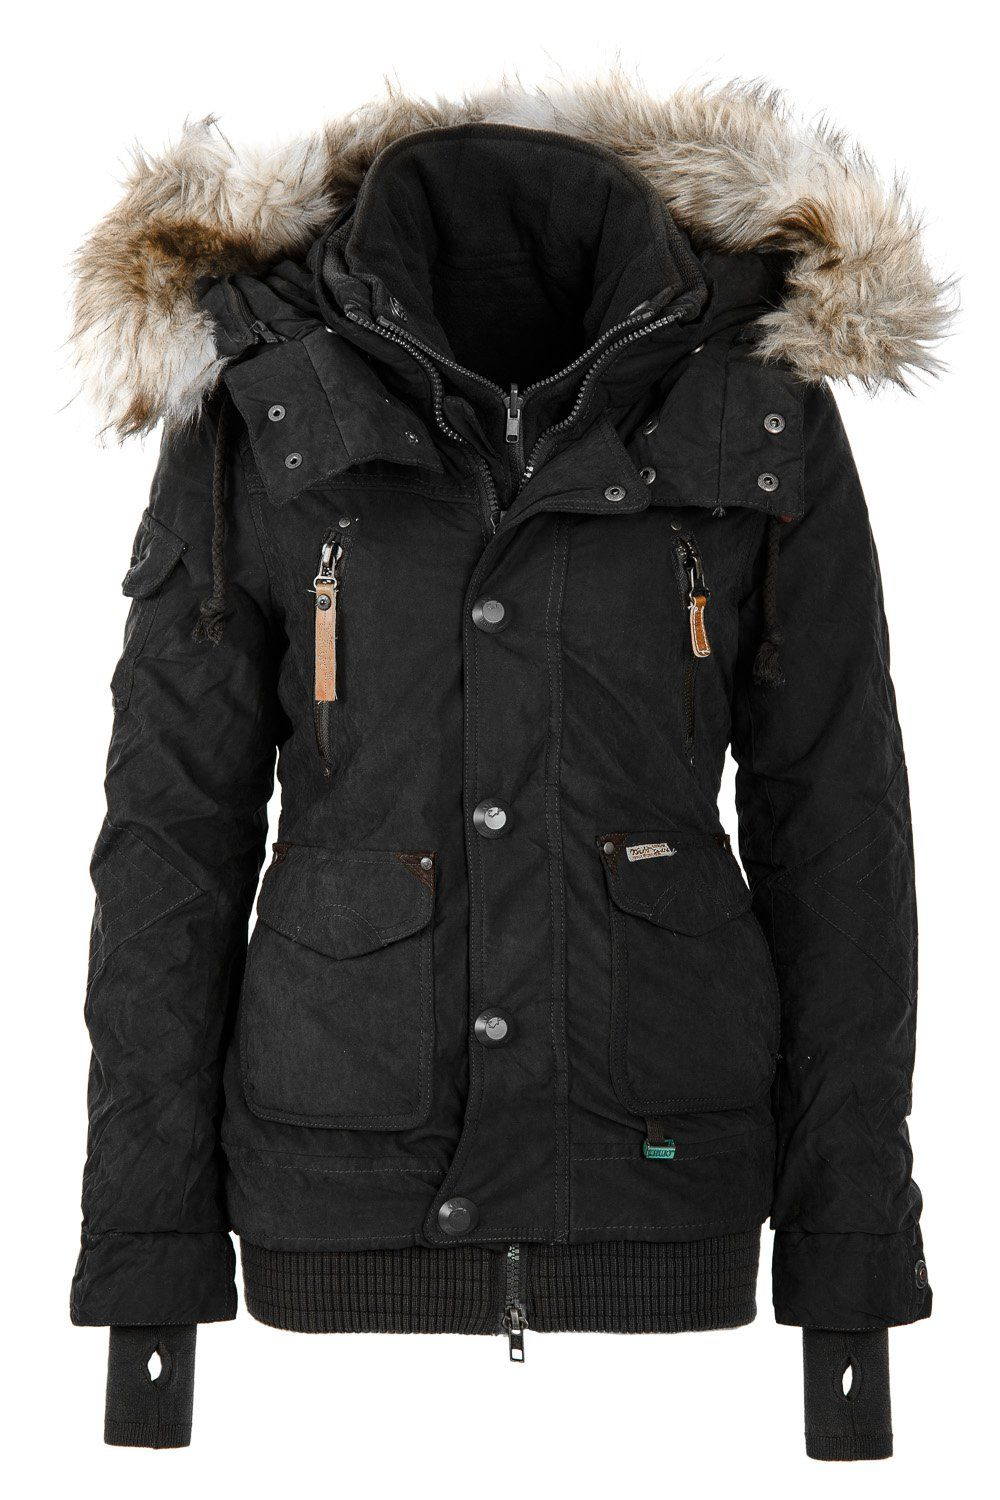 Jacket For Winter - Pl Jackets